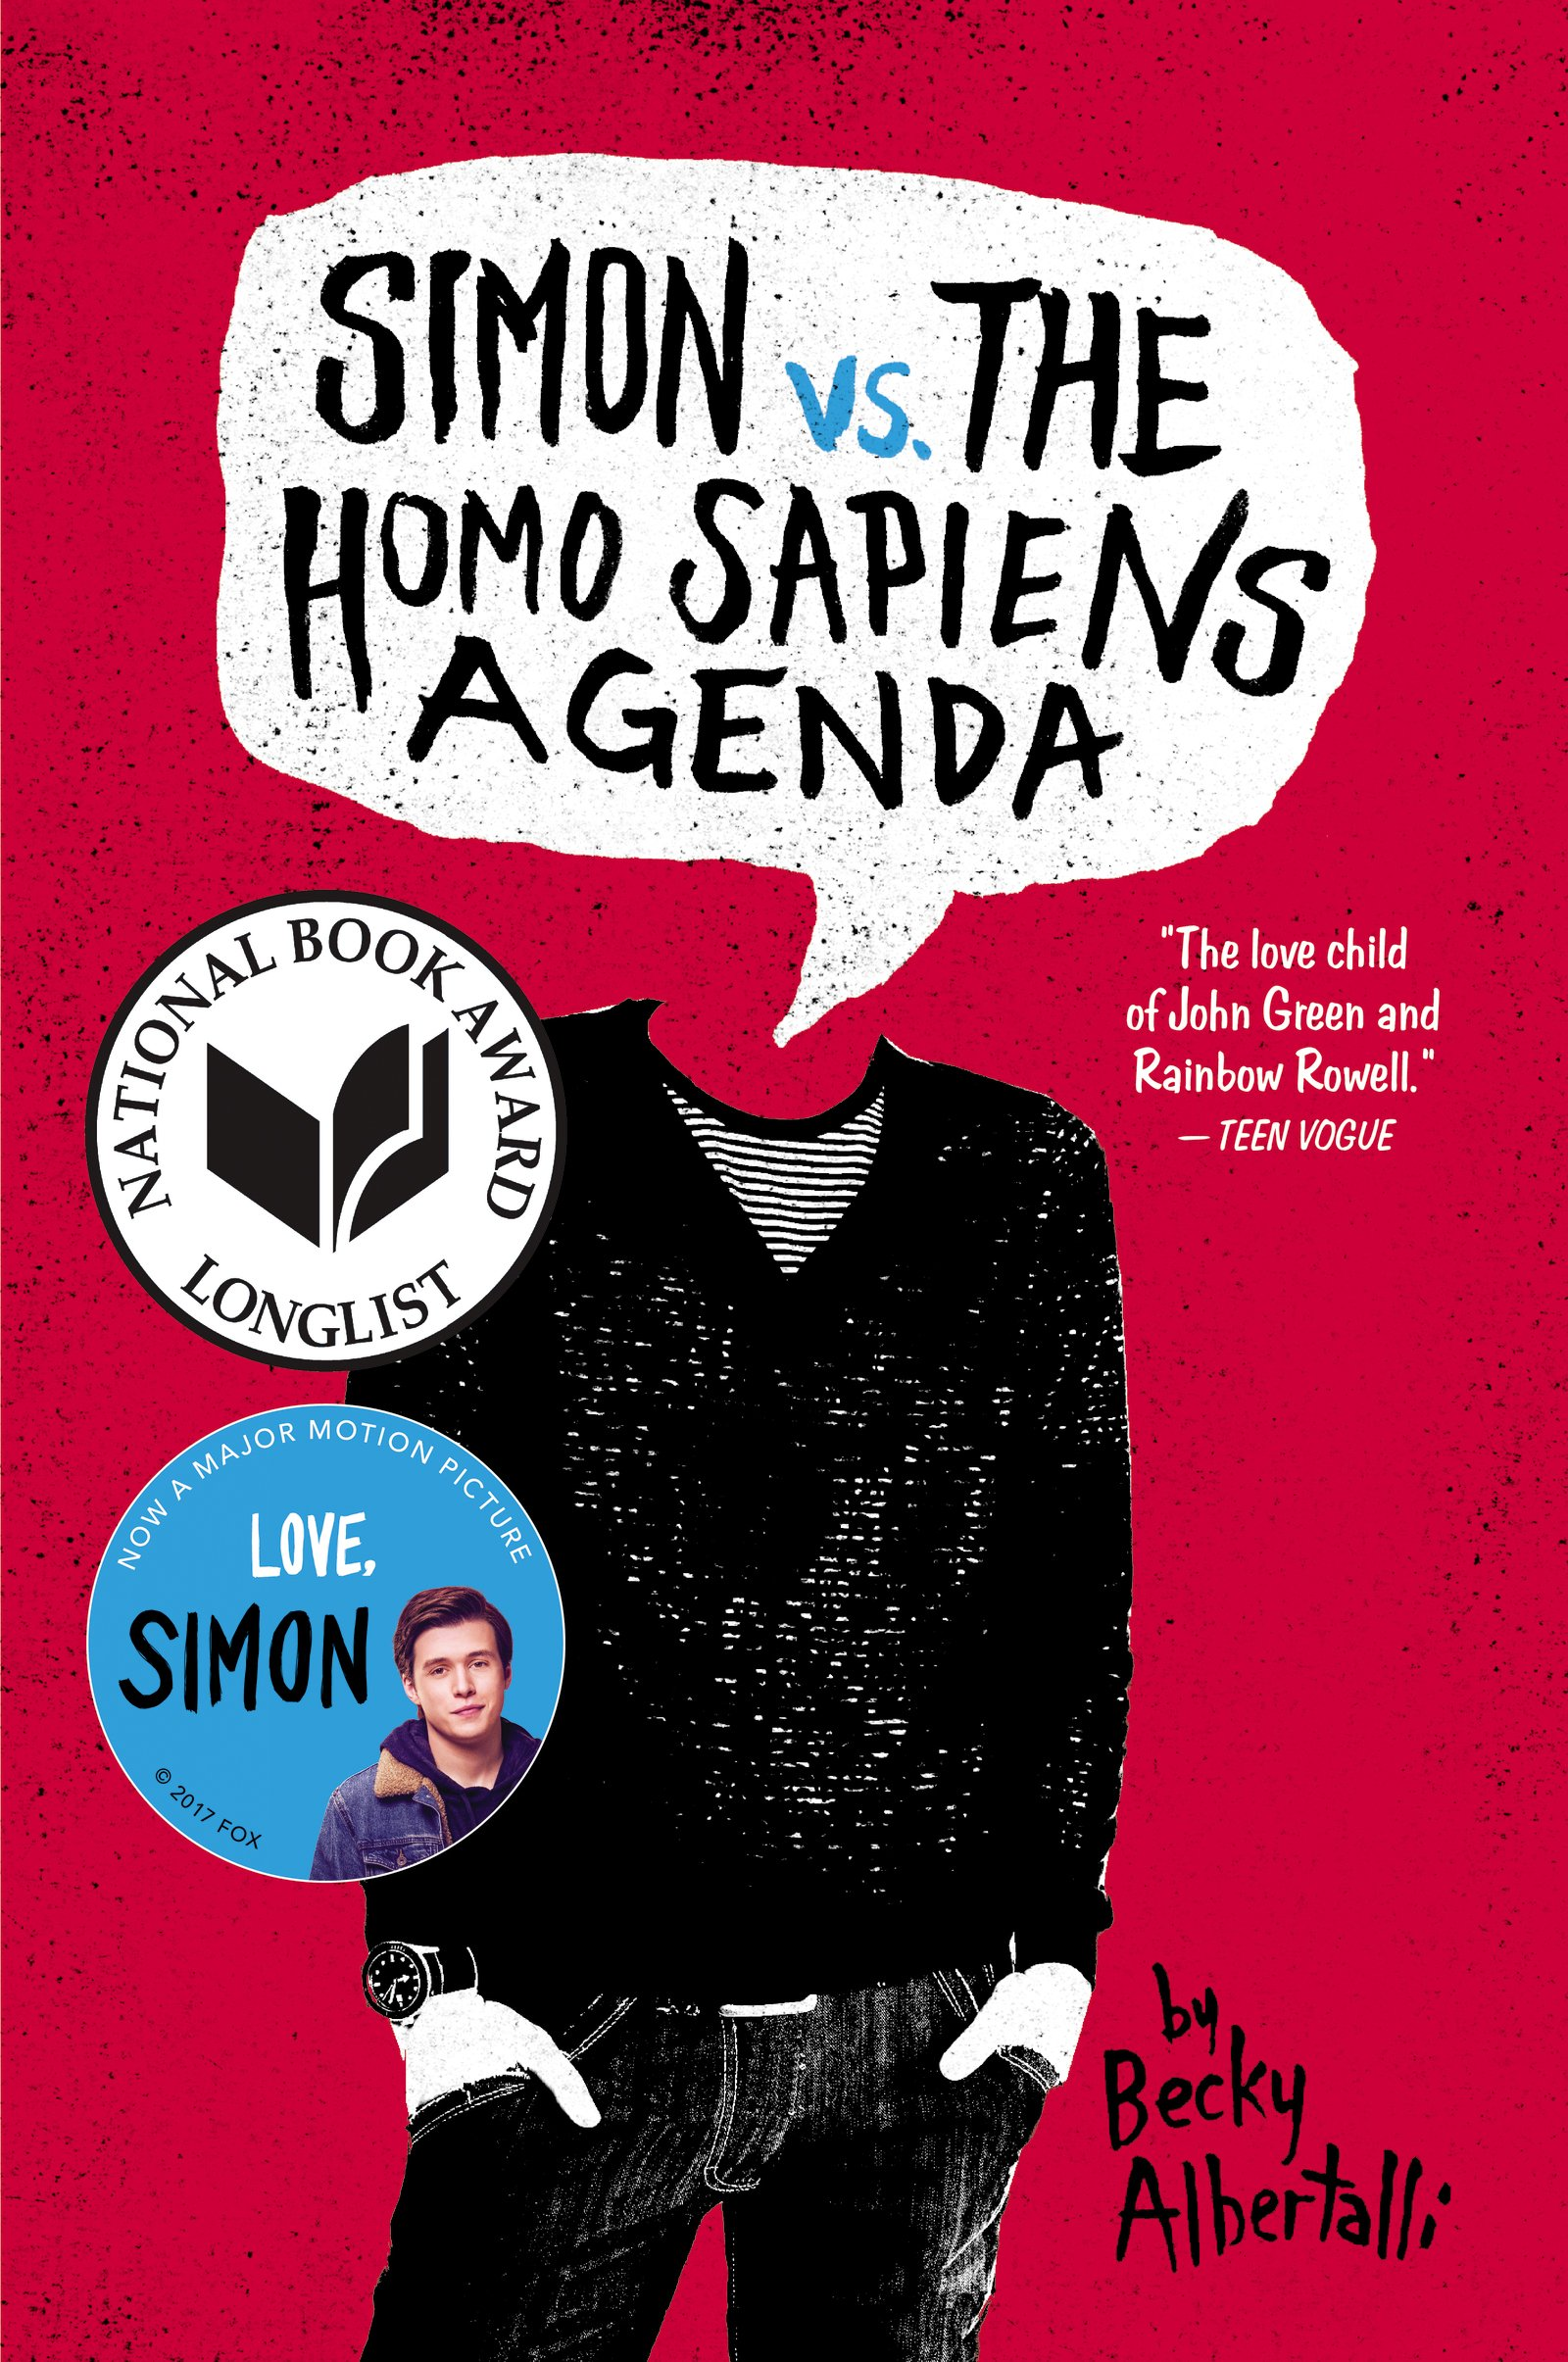 Amazon.com: Simon vs. the Homo Sapiens Agenda (9780062348685): Albertalli,  Becky: Books